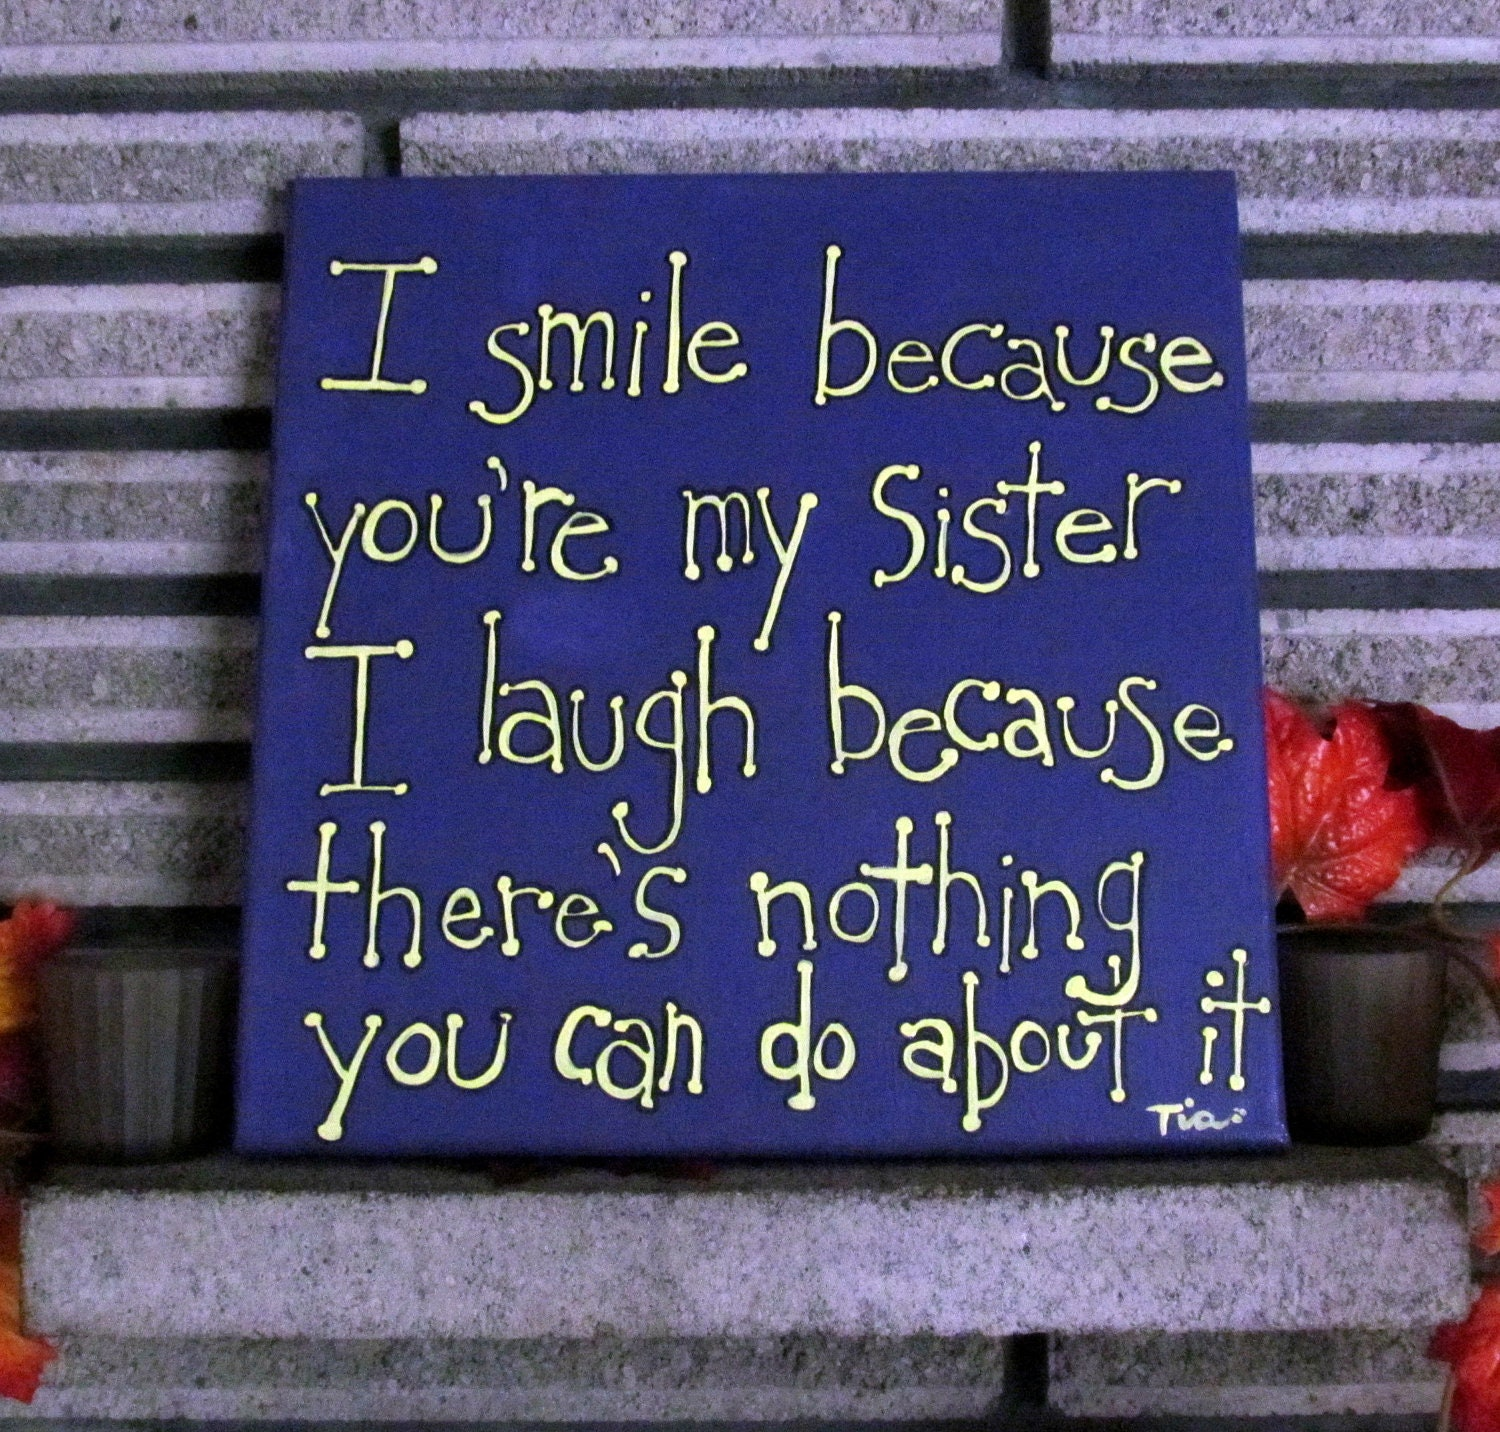 12 Super Sweet Quotes About Sisters for Sisters Day | Cute ... |Sweet Big Sister Quotes About Sisters